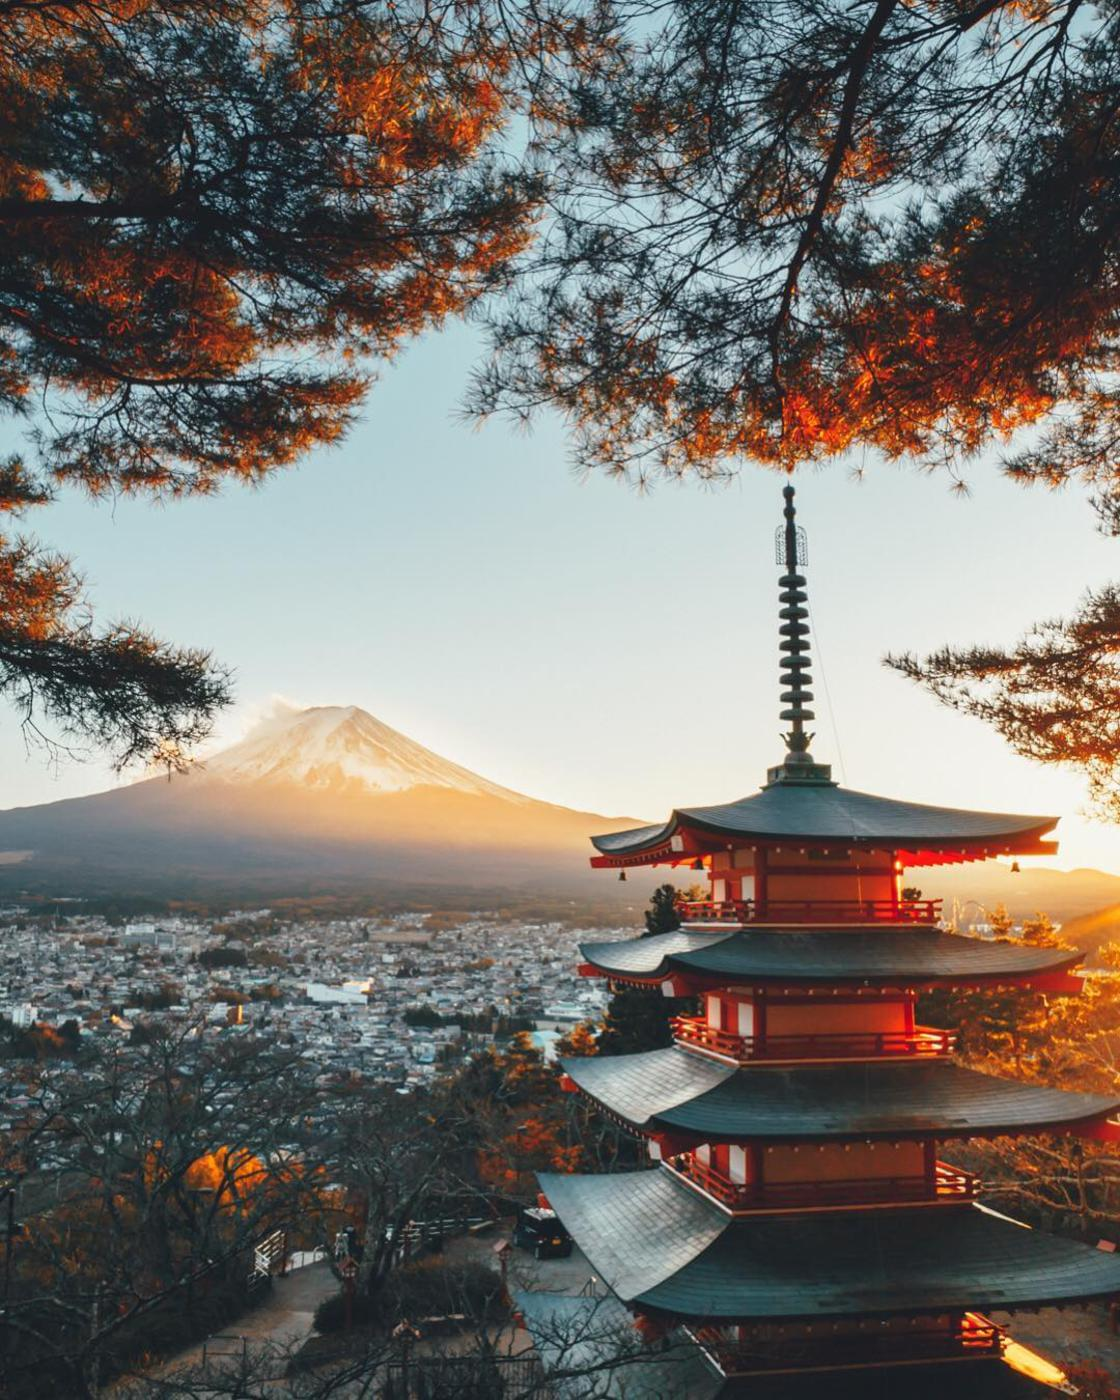 Spirit of Japan – The beauty of Japan captured by Hiro Goto